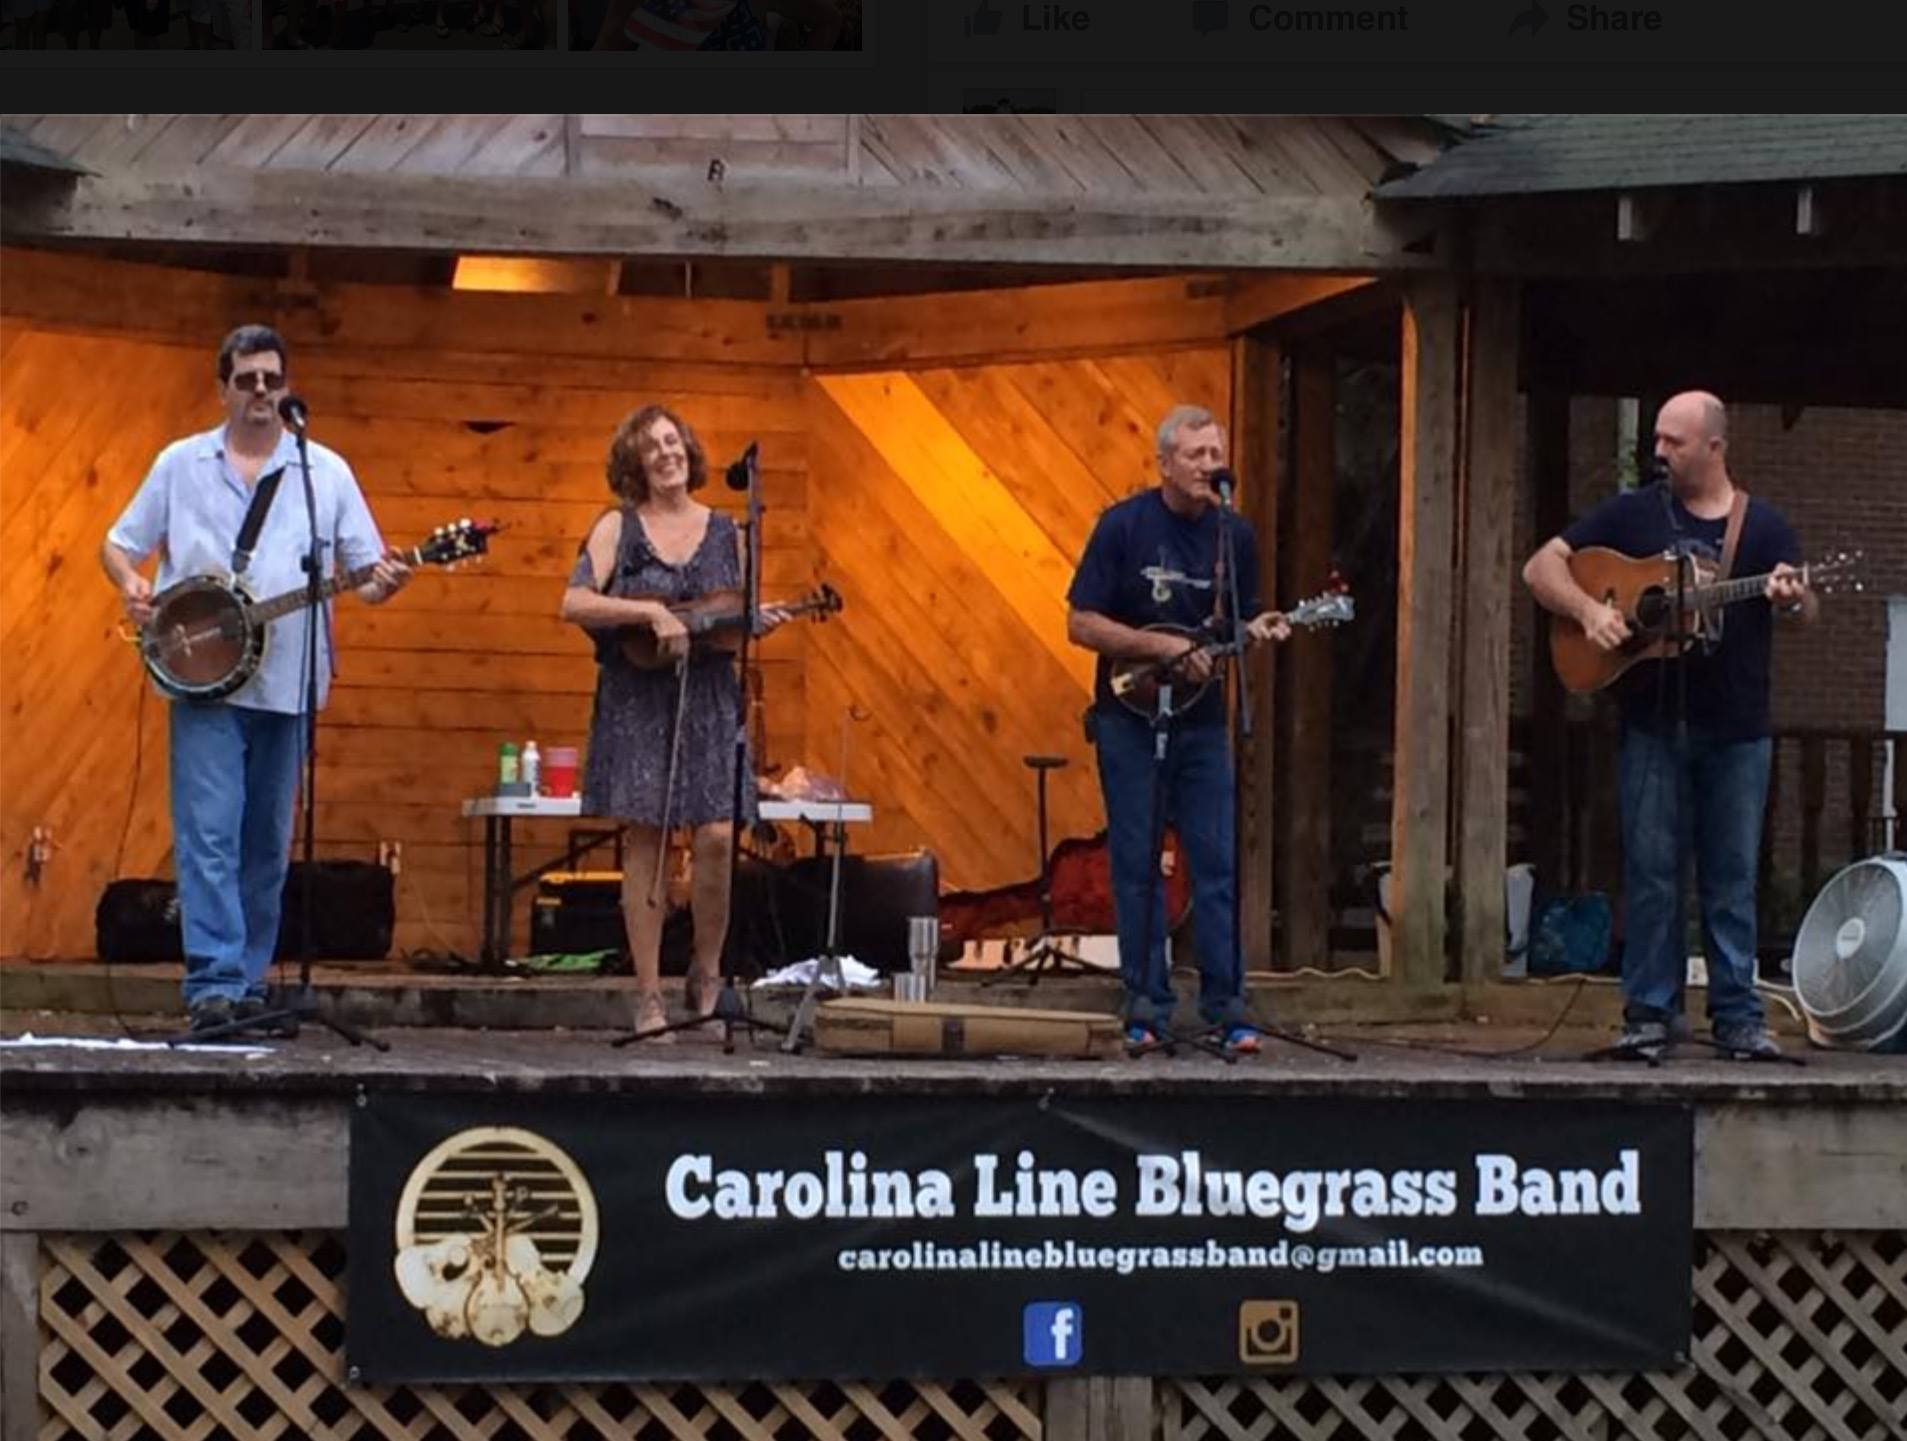 Carolina Line Bluegrass Band